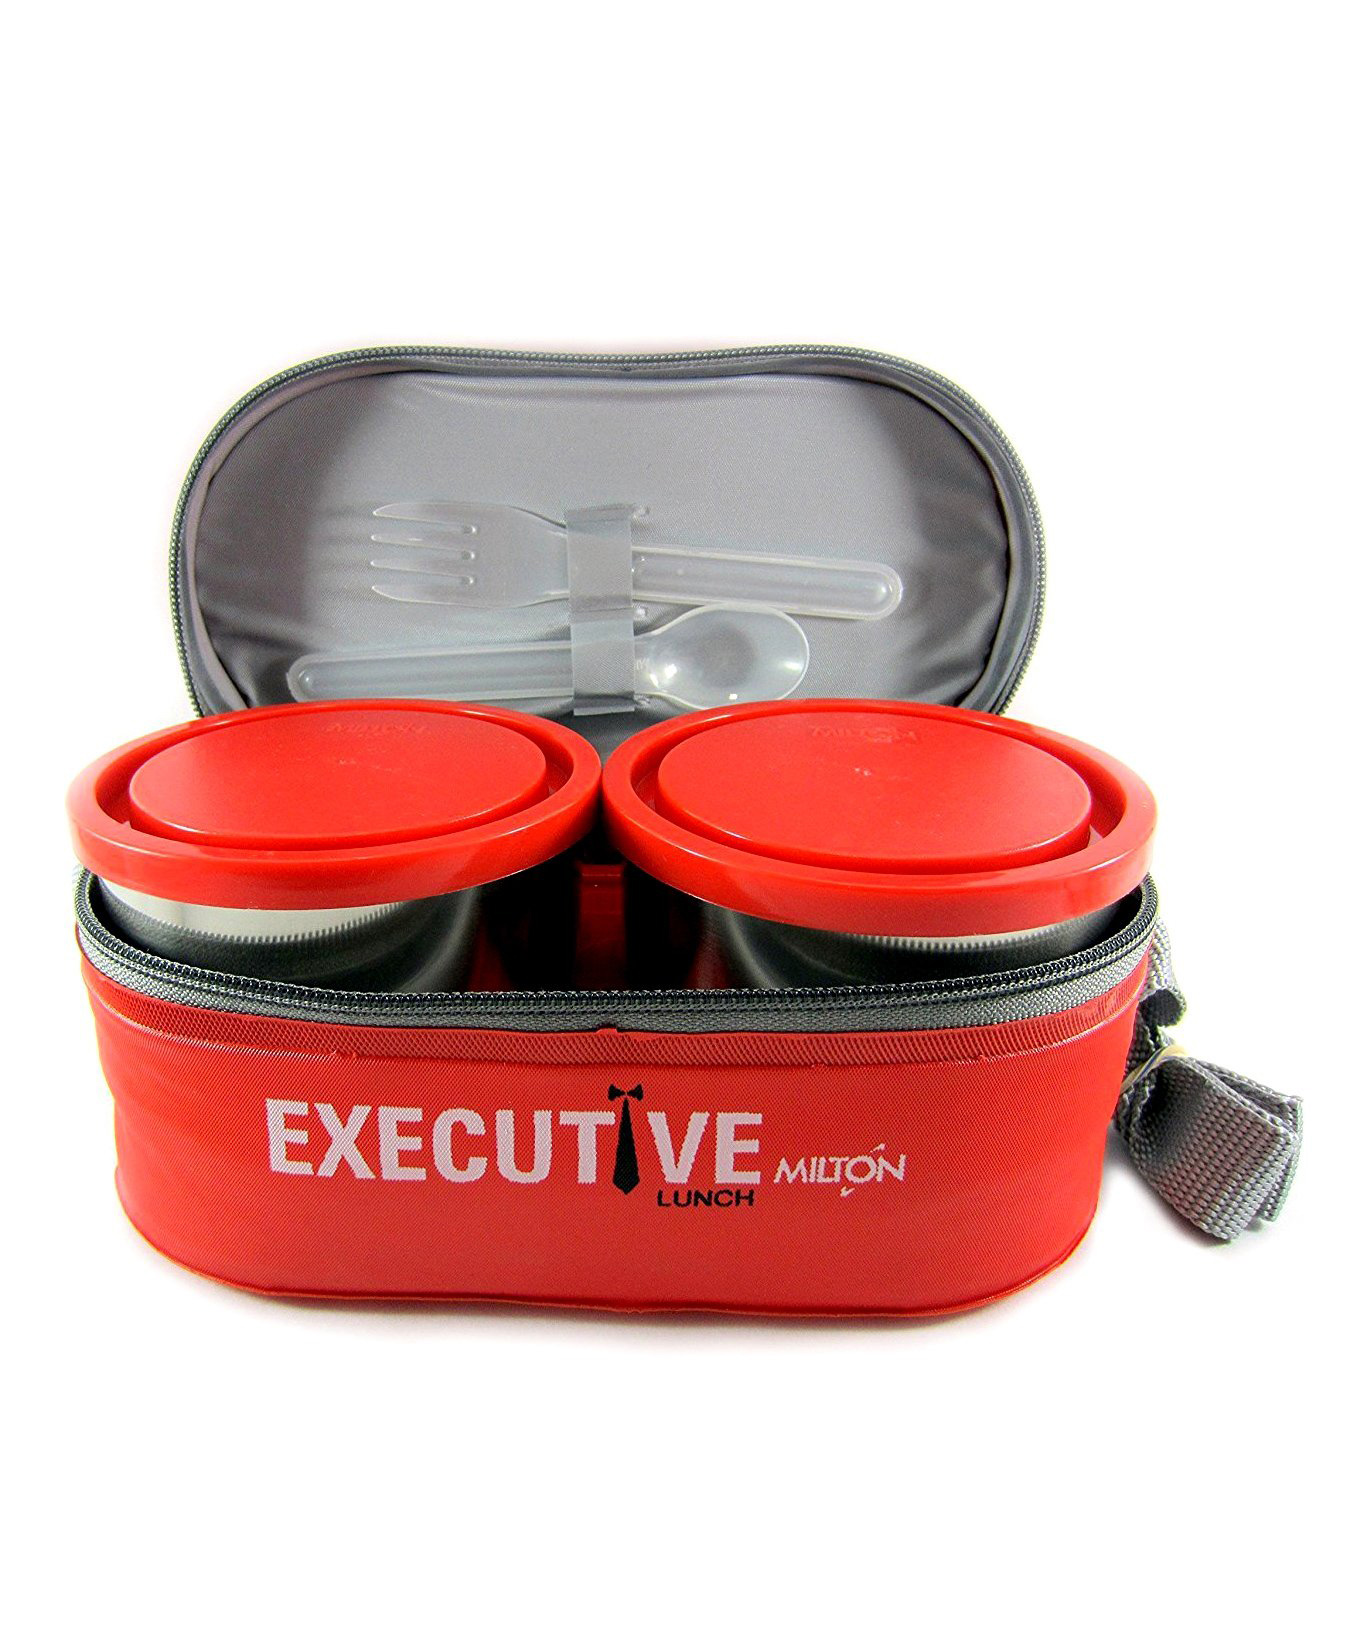 fe29cd7a3a48 Milton Insulated Executive Lunch Box Set of 6 Orange Online in India, Buy  at Best Price from Firstcry.com - 2489853